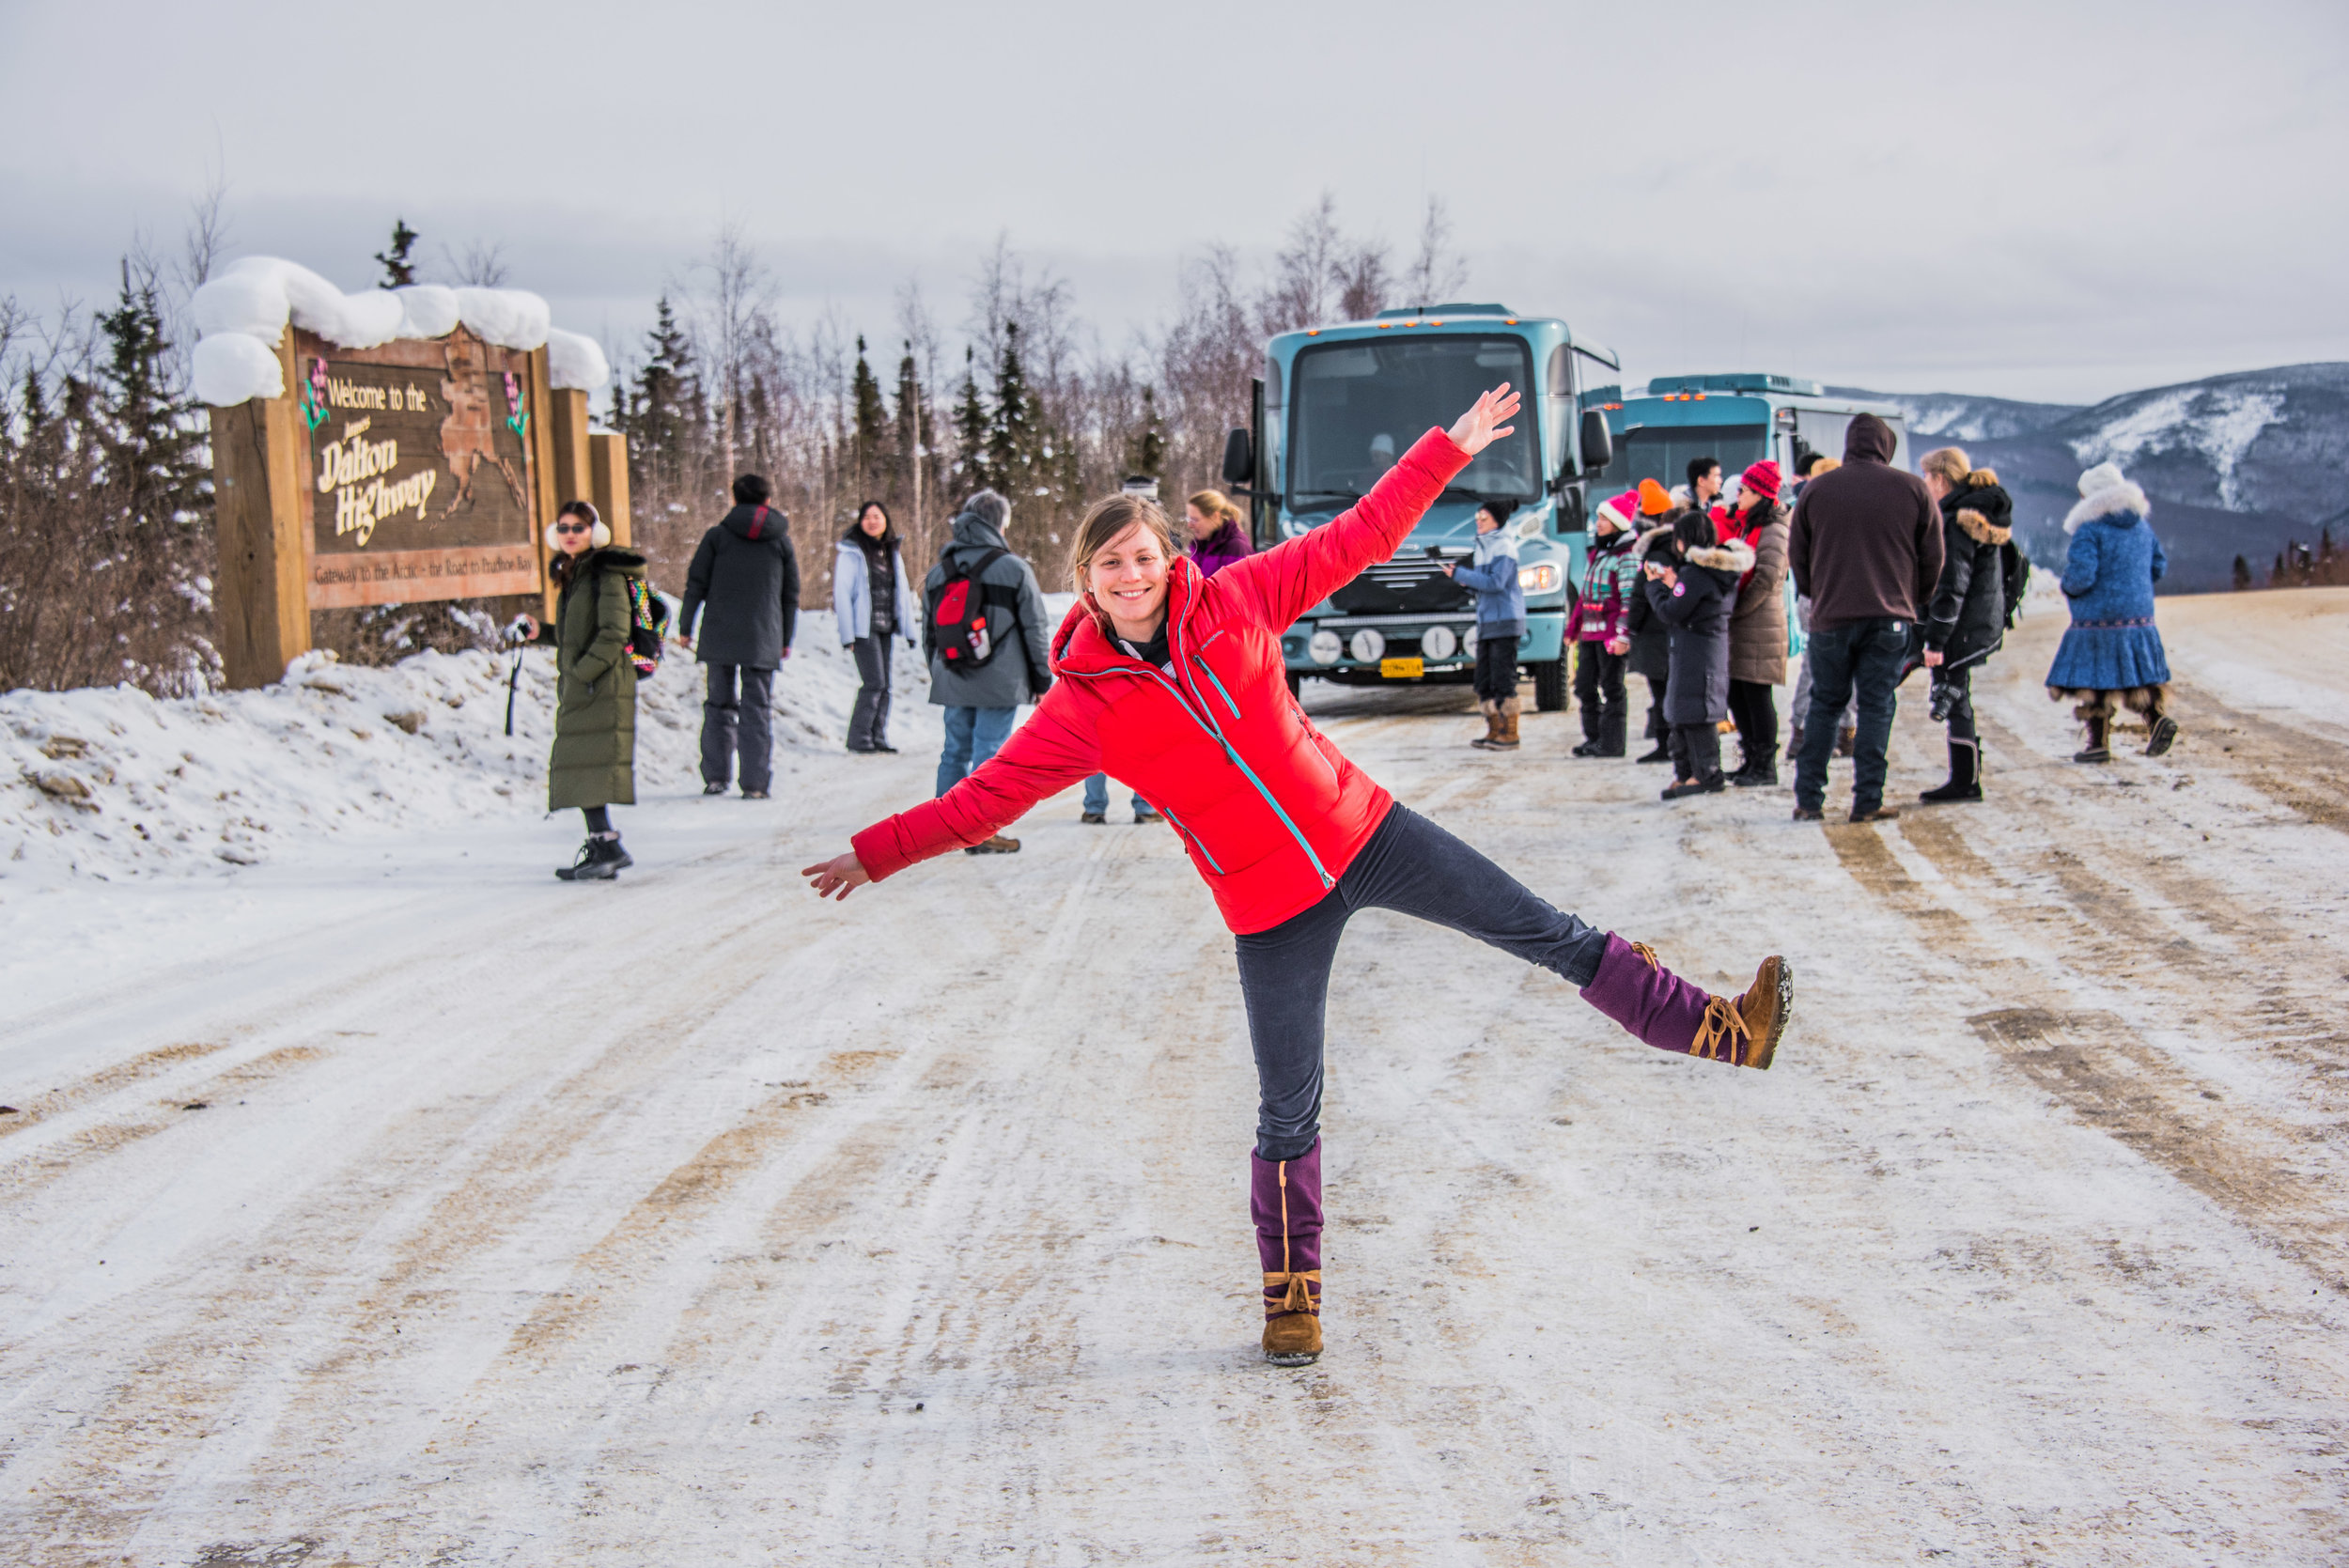 Guests starting their journey on the famous Dalton Highway, with a stop at Mile 1 for photos